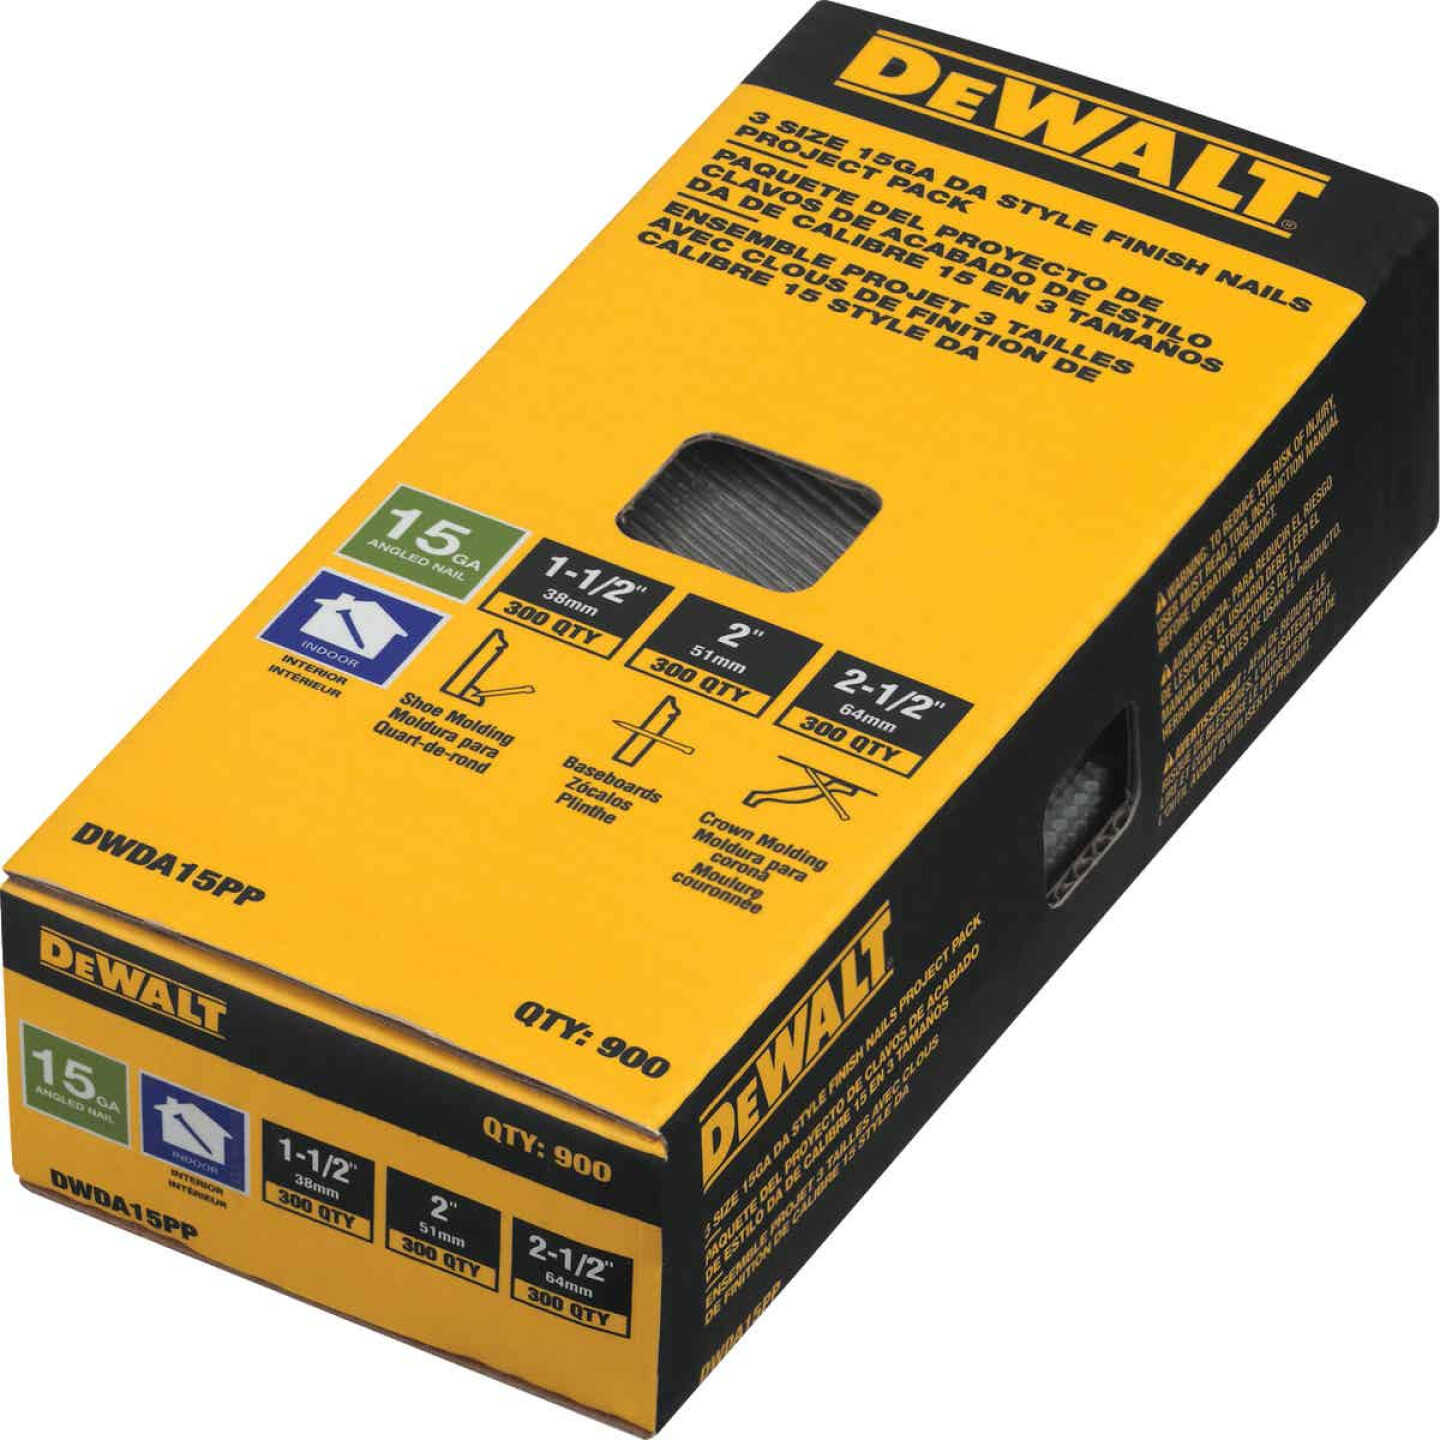 DeWalt 15-Gauge Bright DA-Style Angled Finish Nail Project Pack, 1-1/2 In., 2 In., 2-1/2 In. (900 Ct.) Image 2